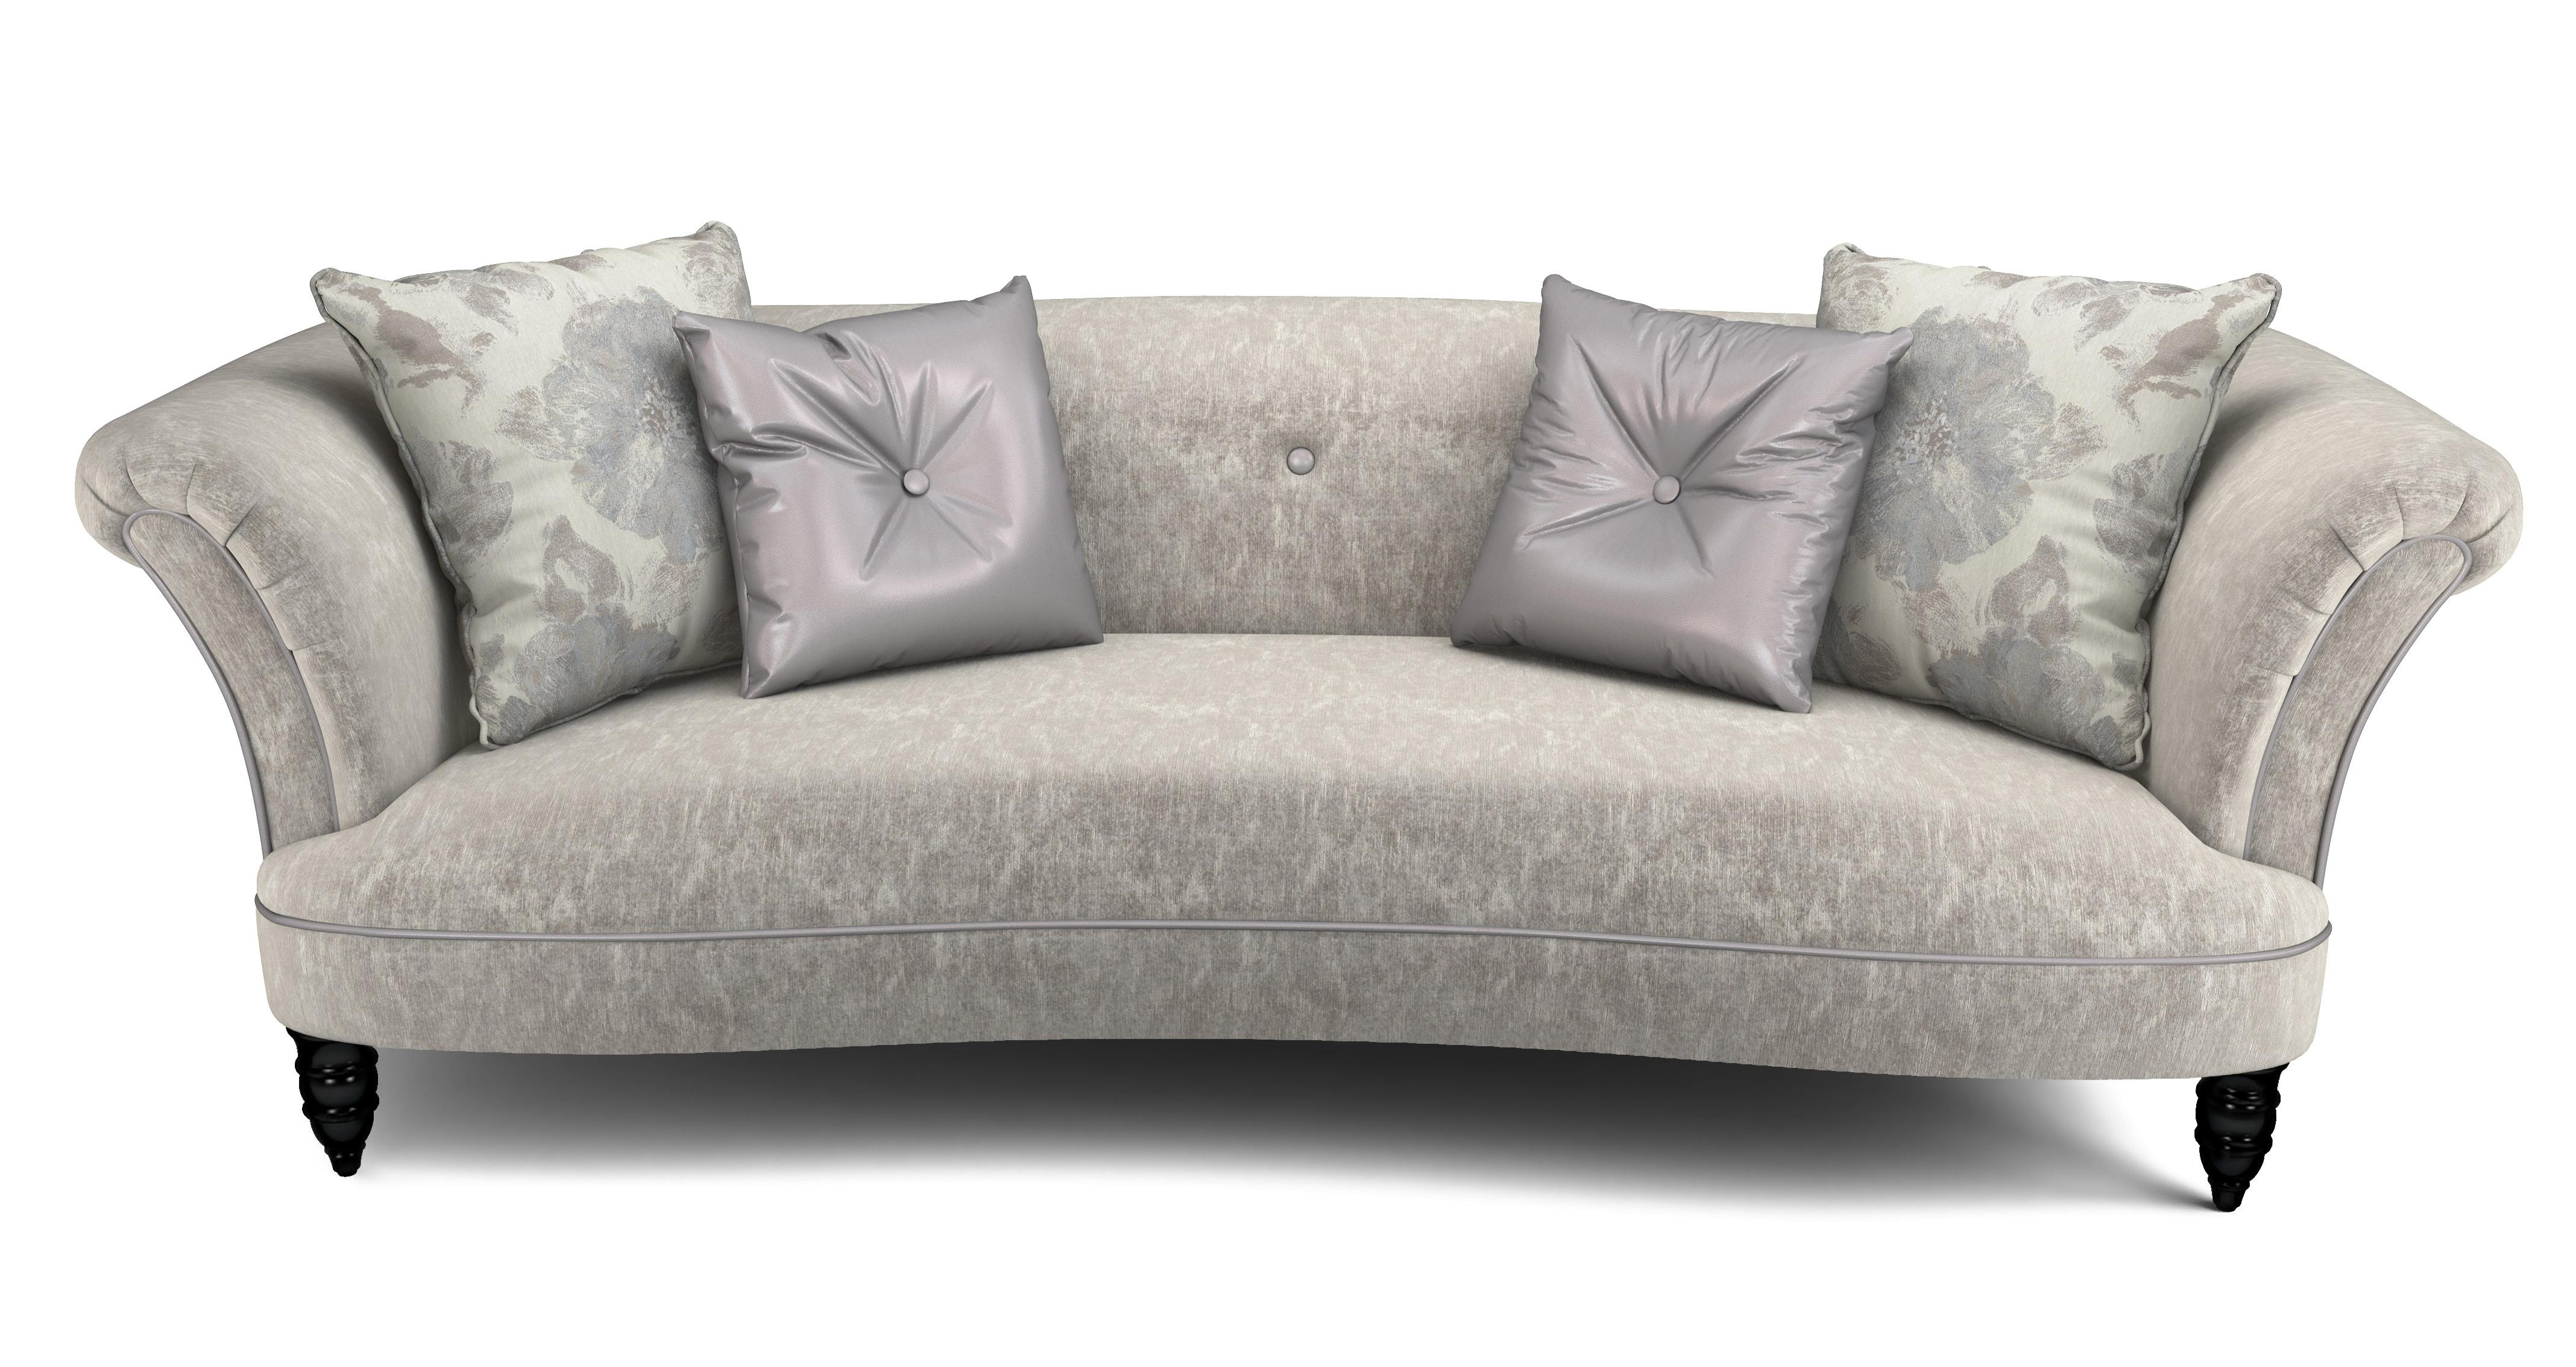 Charming Concerto 4 Seater Sofa | DFS